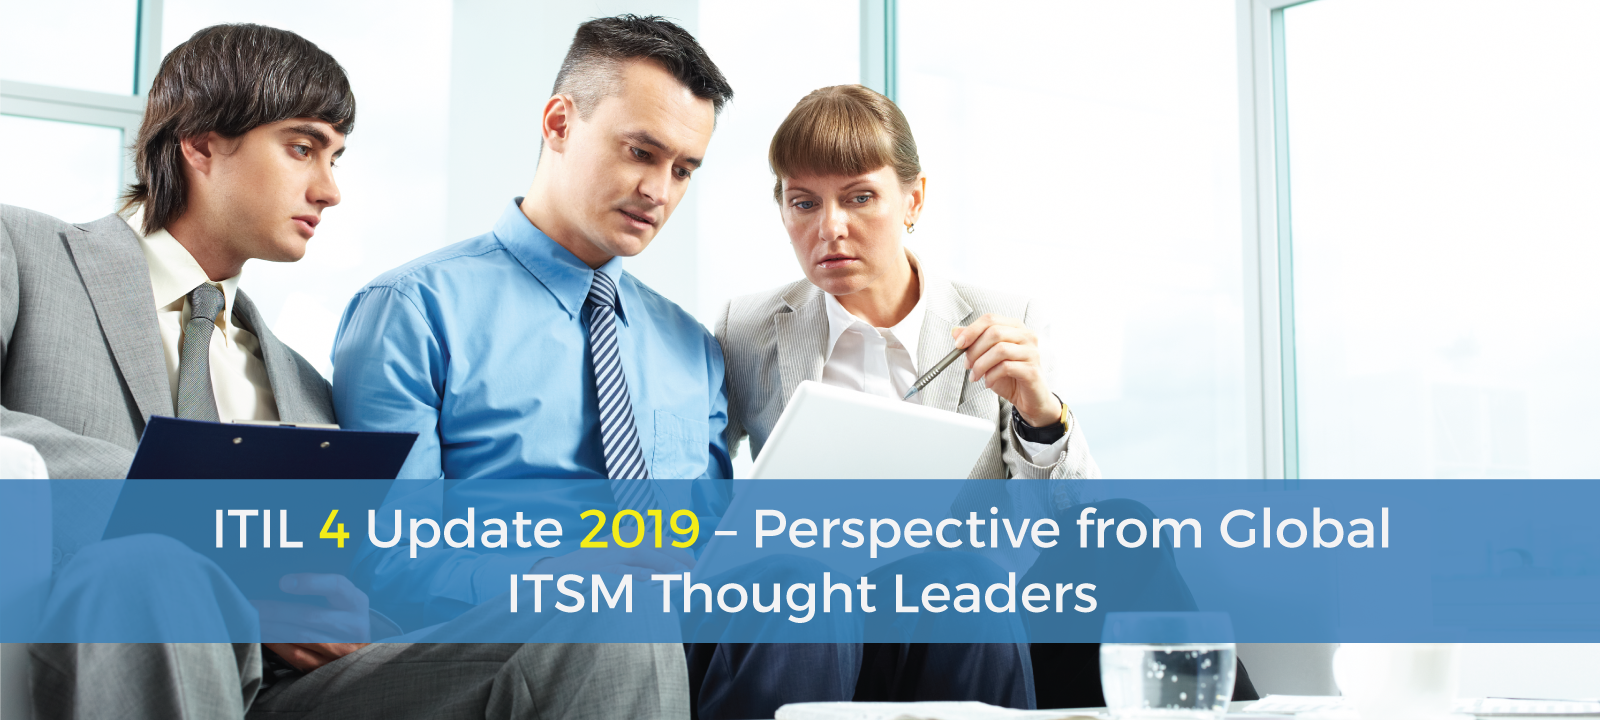 ITIL 4 Update 2019 – Perspective from Global ITSM Thought